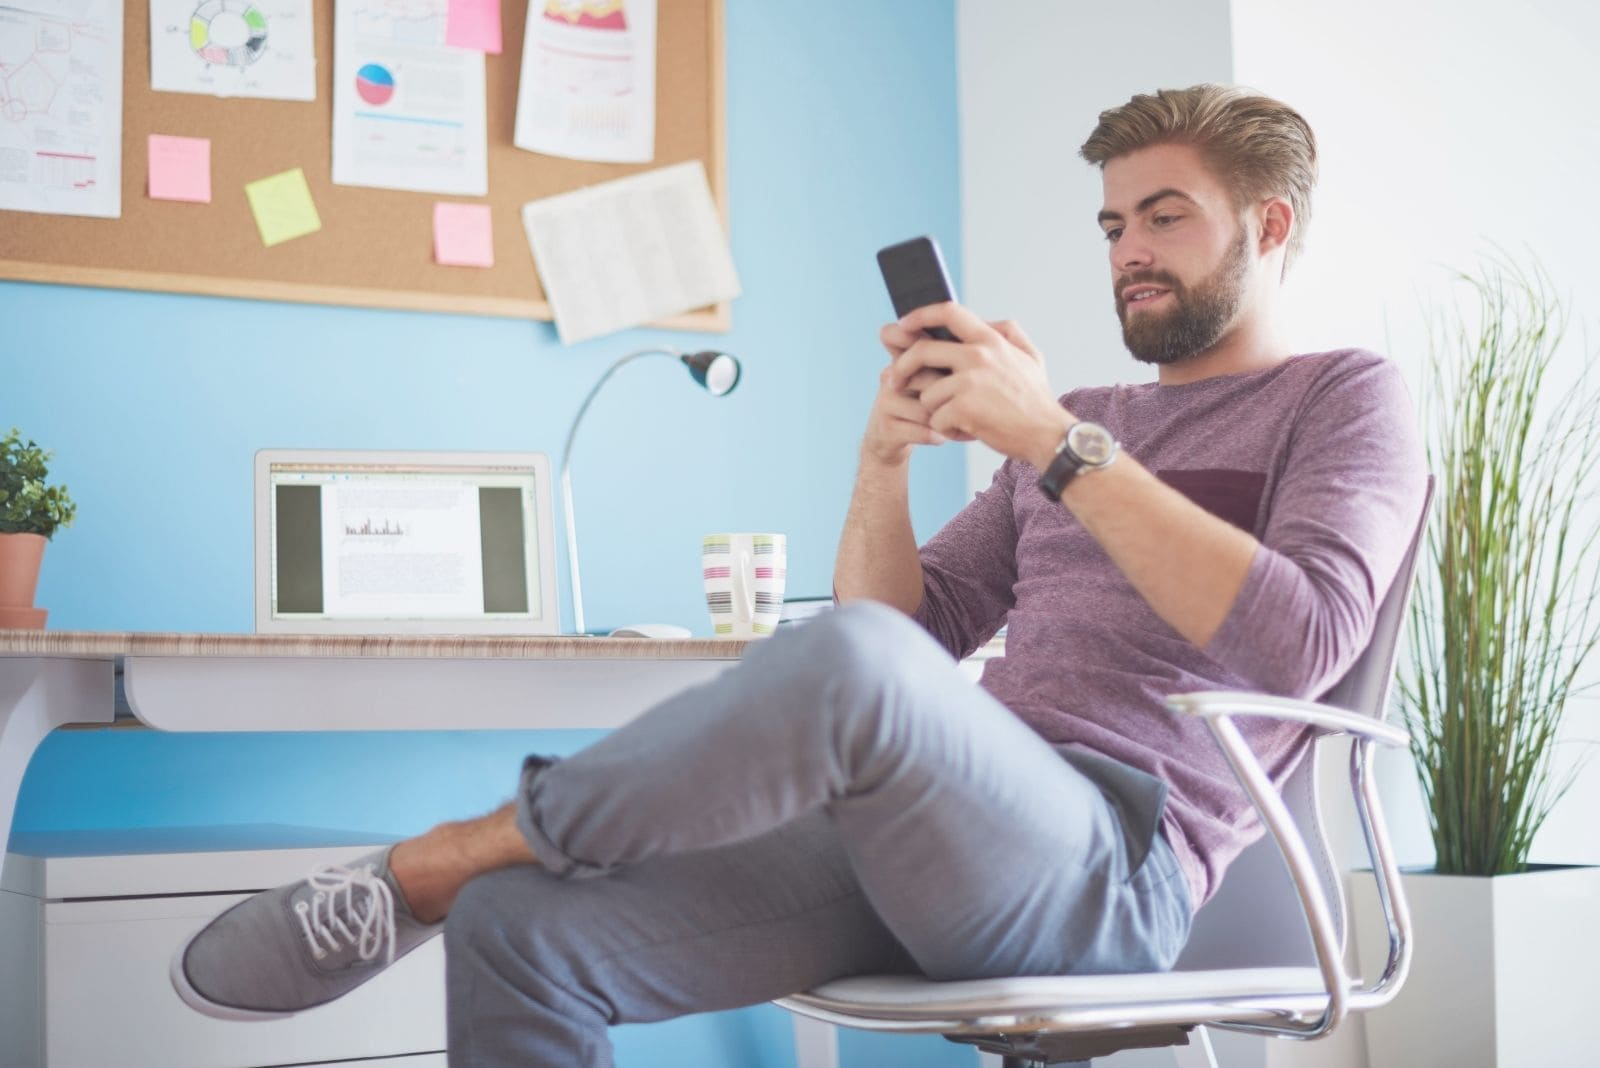 man texting in his mobile phone while sitting inside office